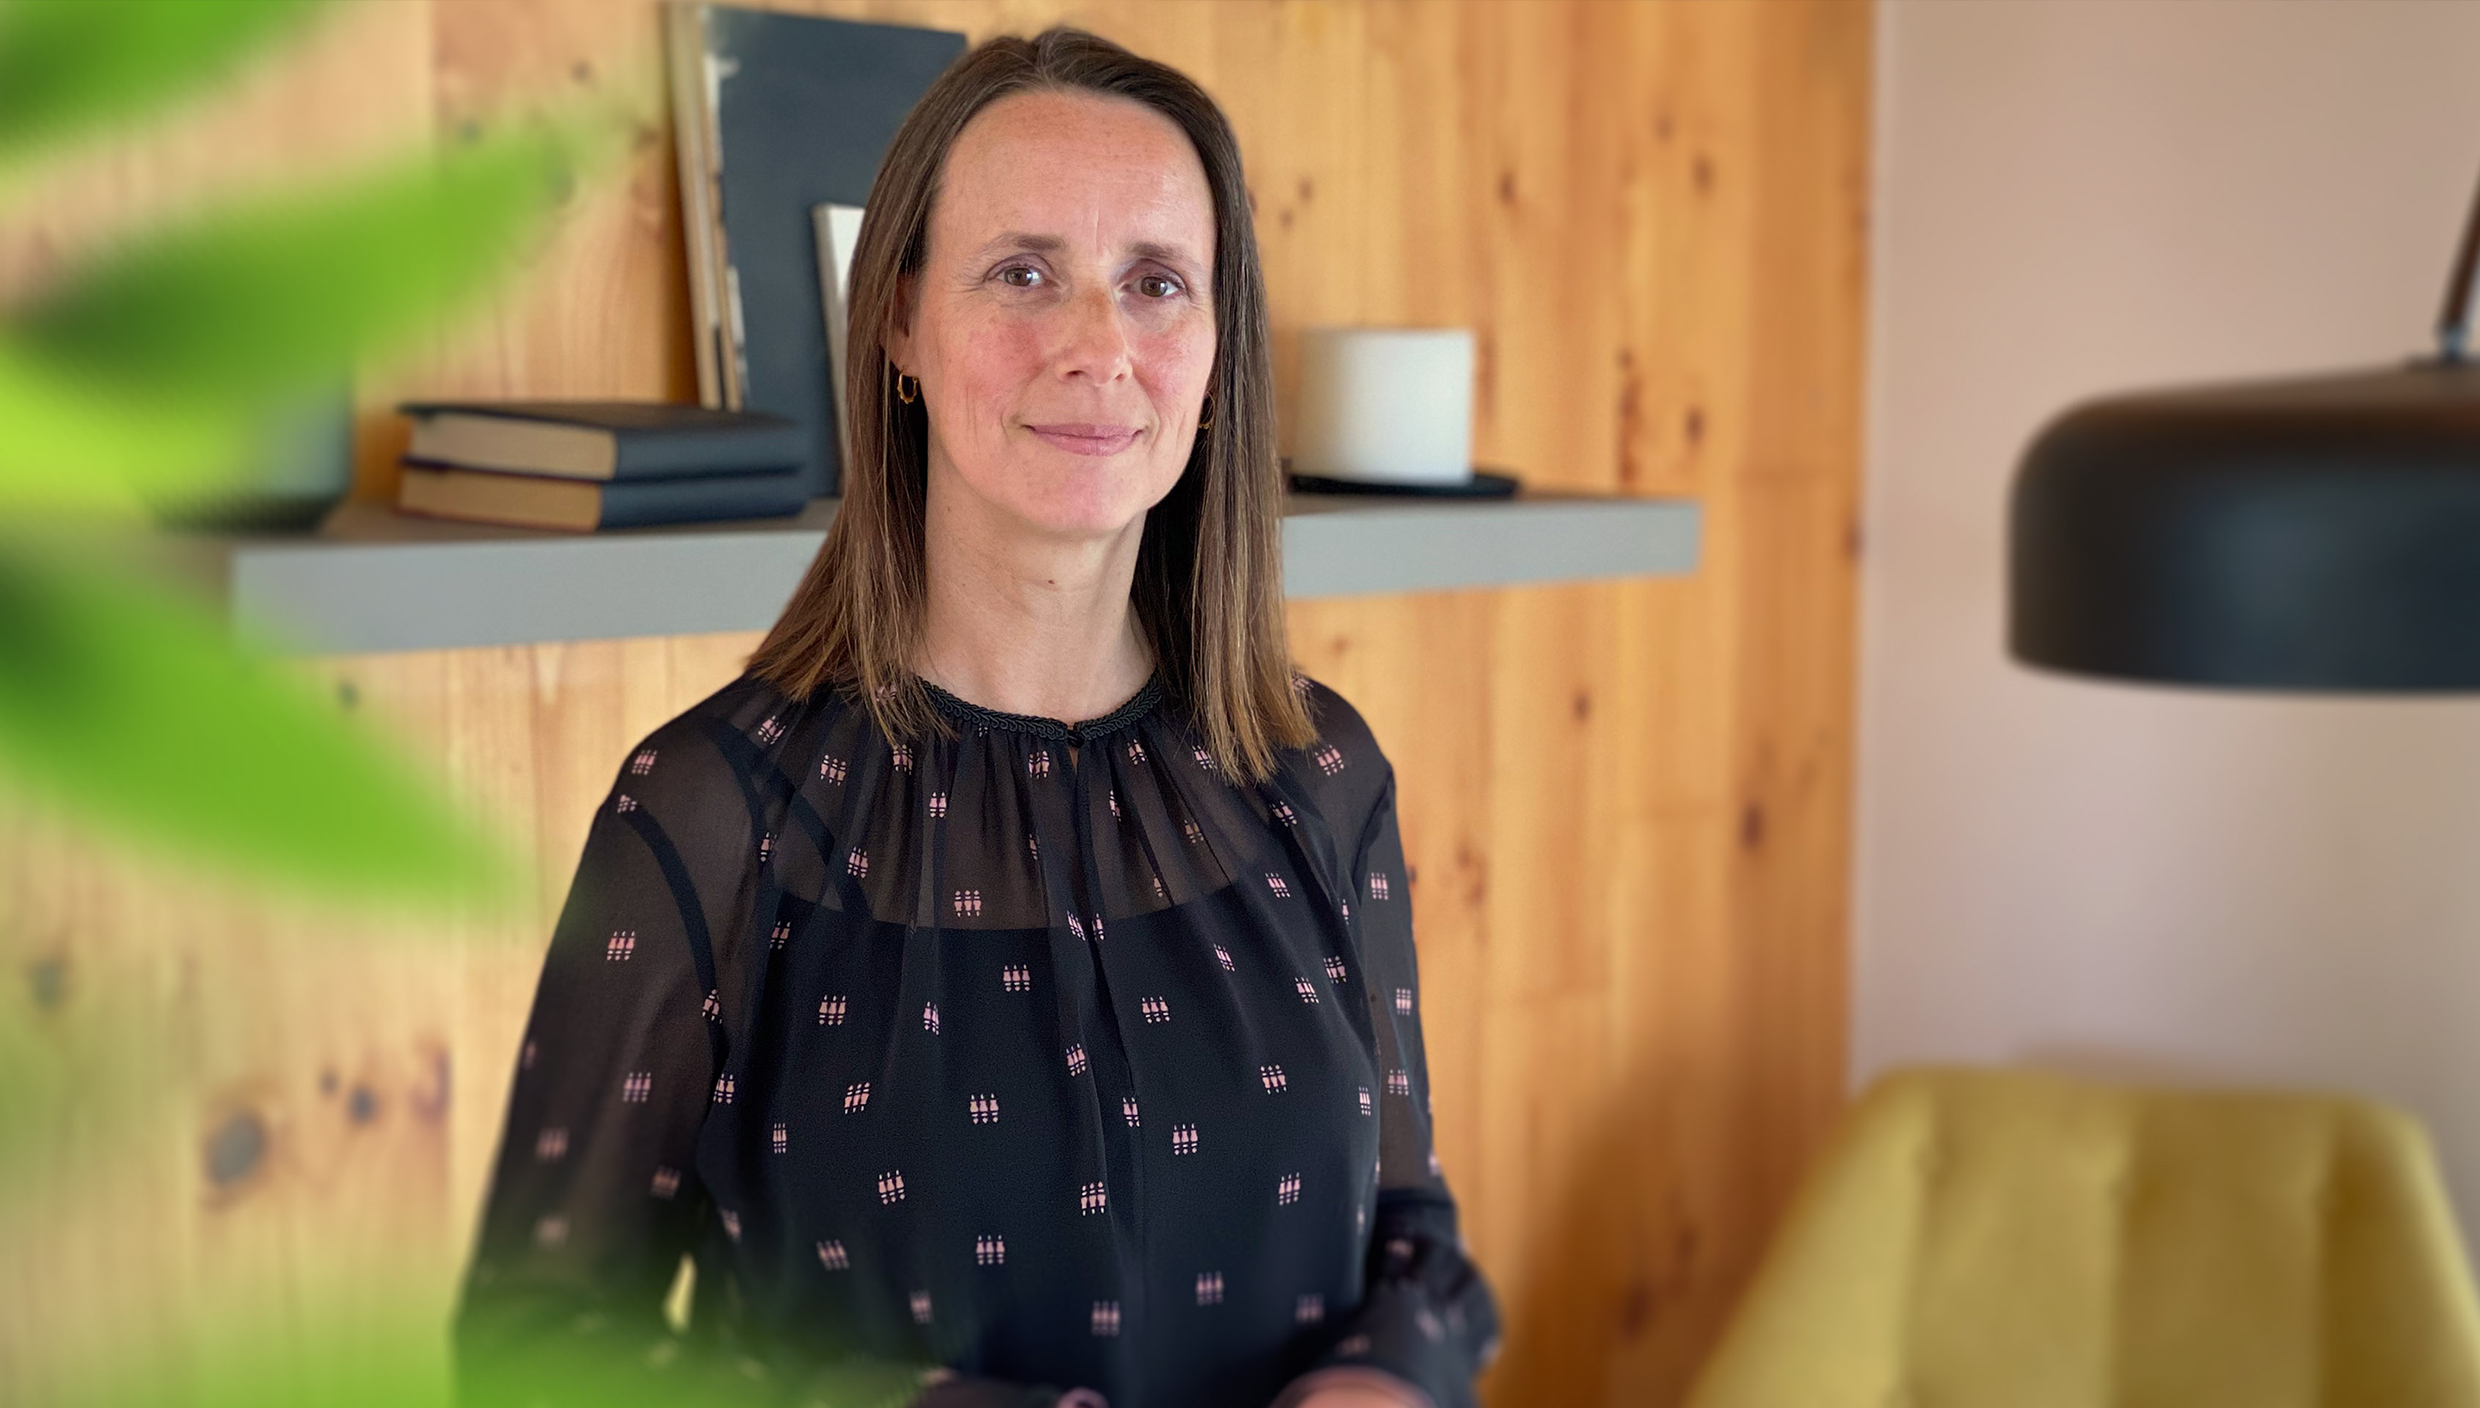 Impact Capital Group appoints new Chief People Officer, Sarah Stennett